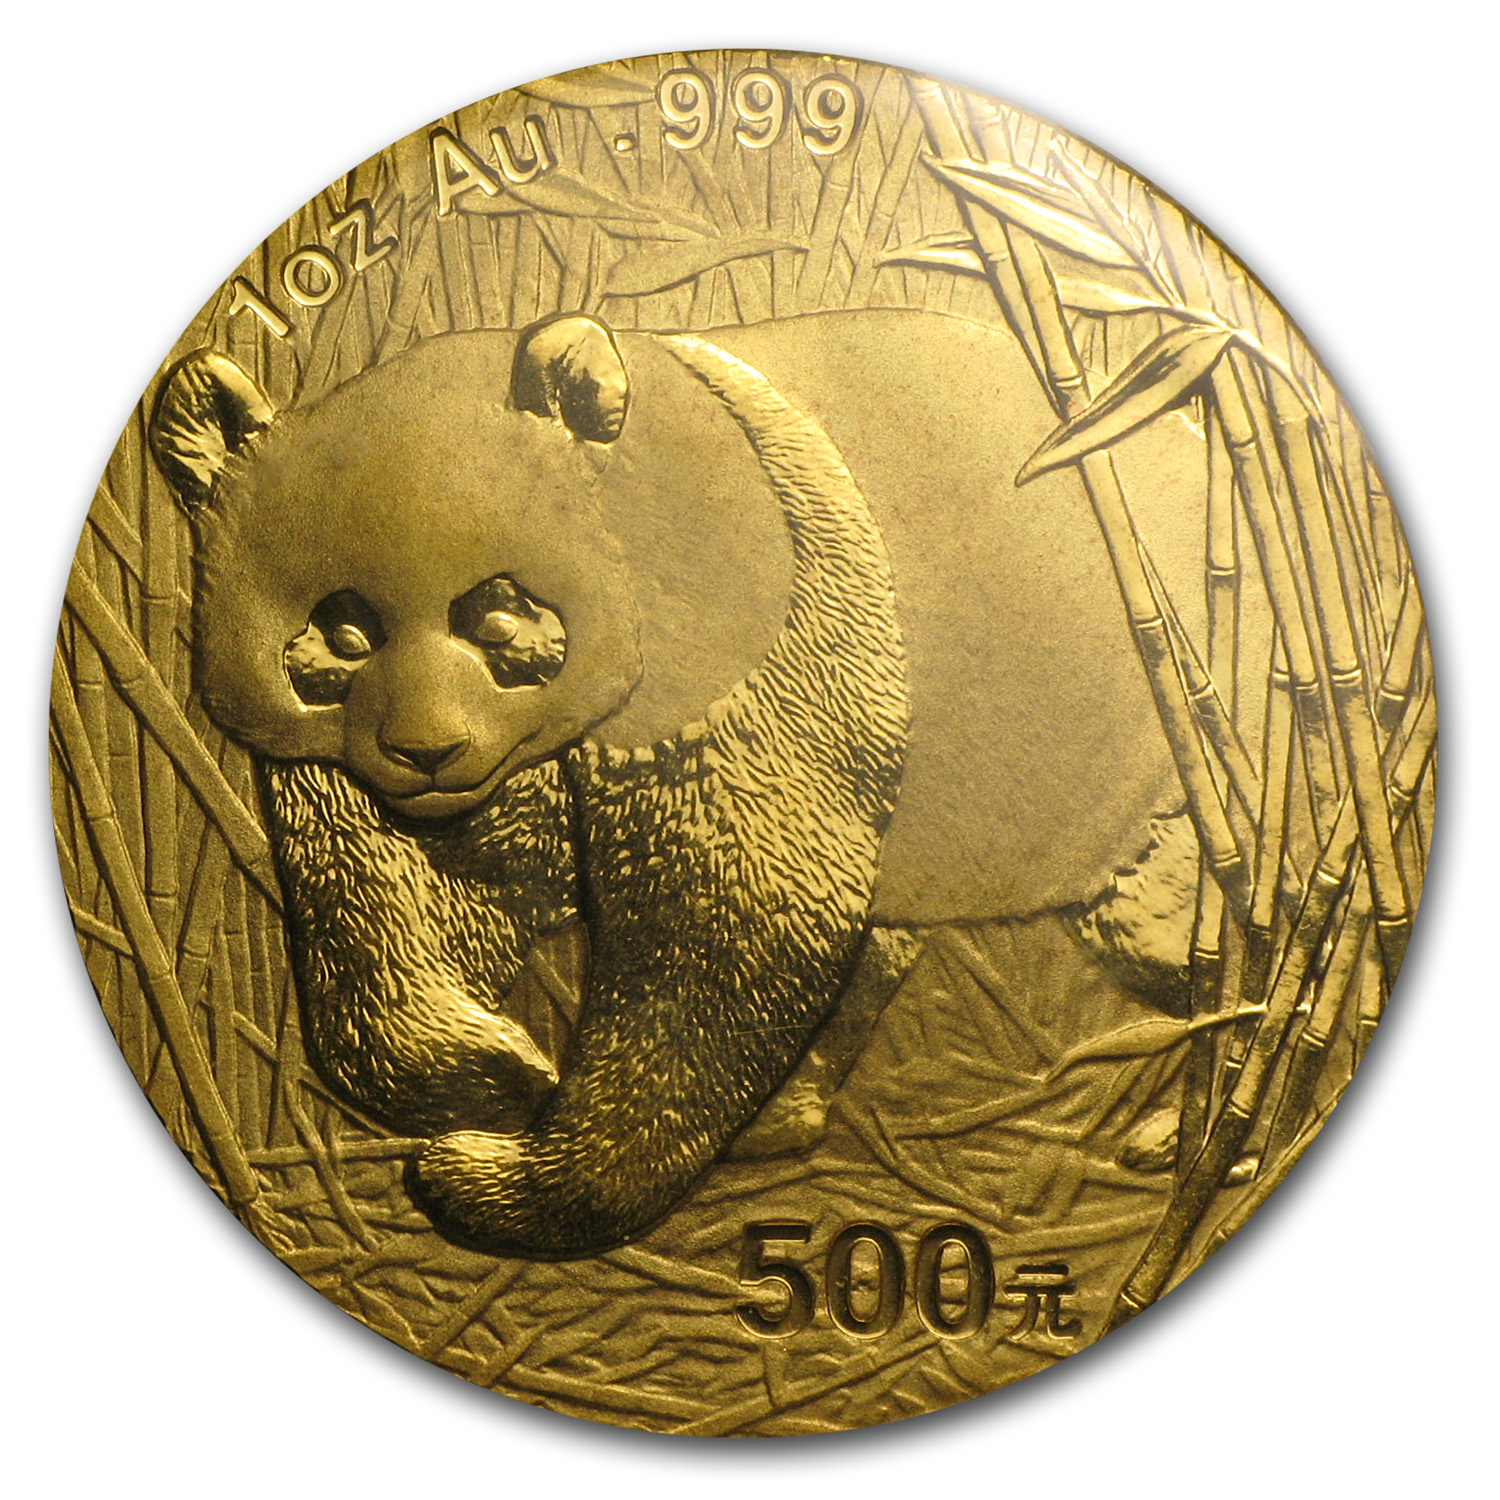 2001 1 oz Gold Chinese Panda BU (Sealed)